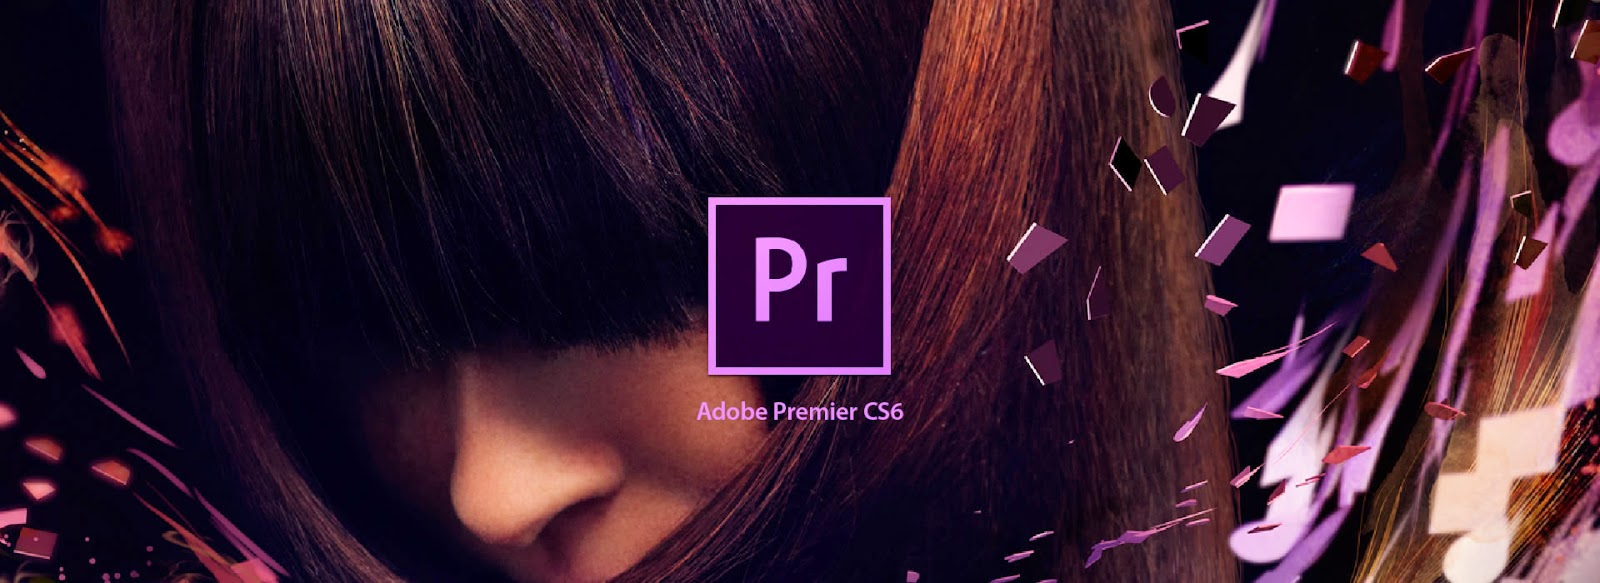 Adobe Premiere Pro CS6 Full Version - Free Download with Crack and Serial A